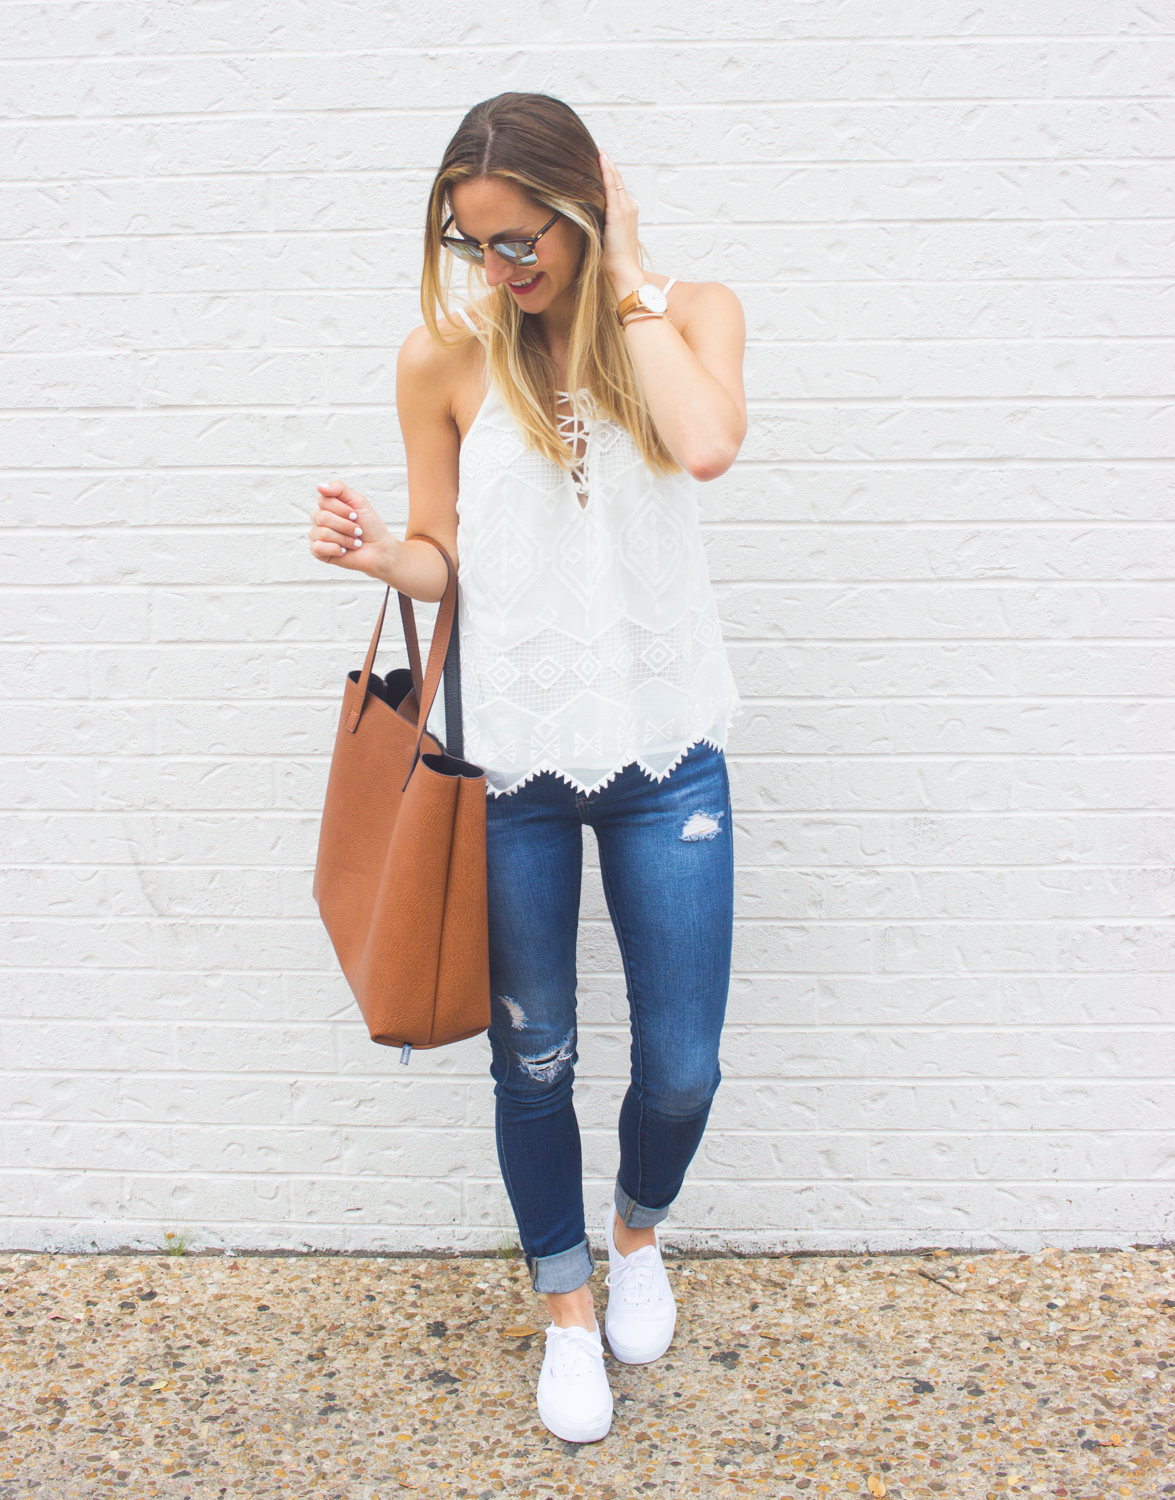 livvyland-blog-olivia-watson-austin-texas-fashion-blogger-nordstrom-vans-white-sneakers-summer-outfit-4